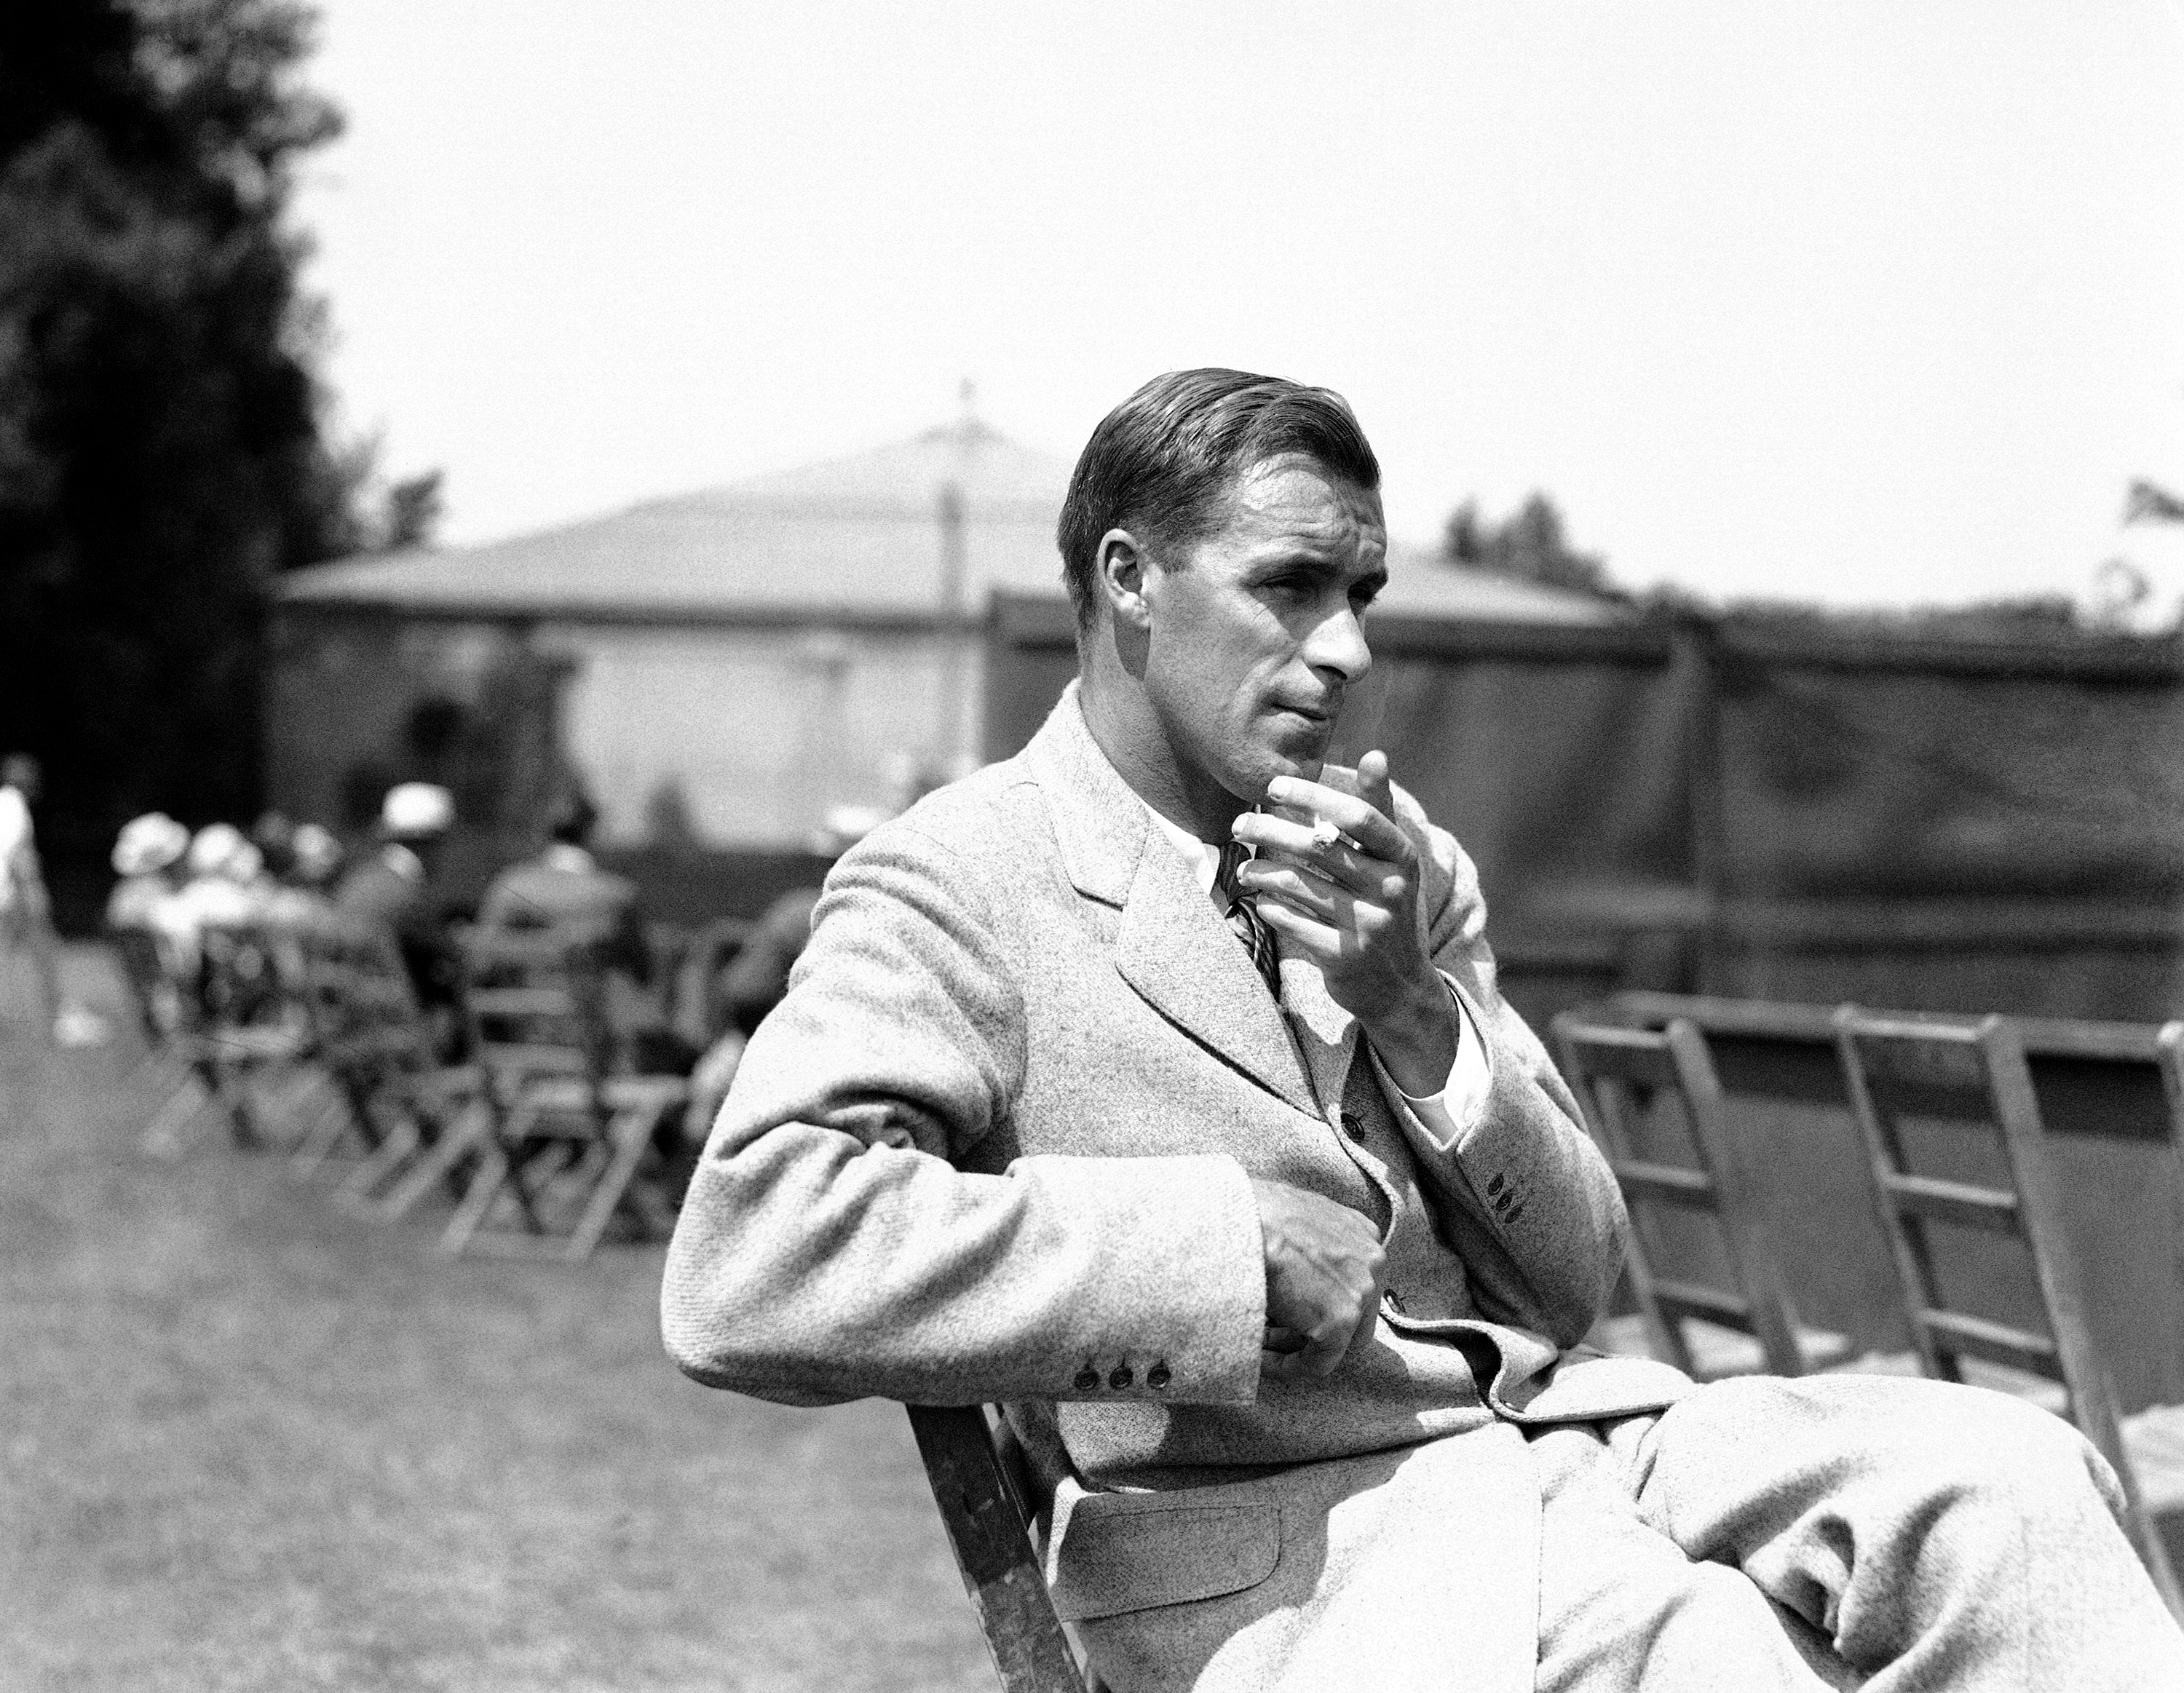 FILE - In this June 1925 file photo, Bill Tilden watches a match in Philadelphia, during the National Doubles Tennis matches. A group is pushing for a historical marker touting the accomplishments of tennis great Bill Tilden at Philadelphia's Germantown C